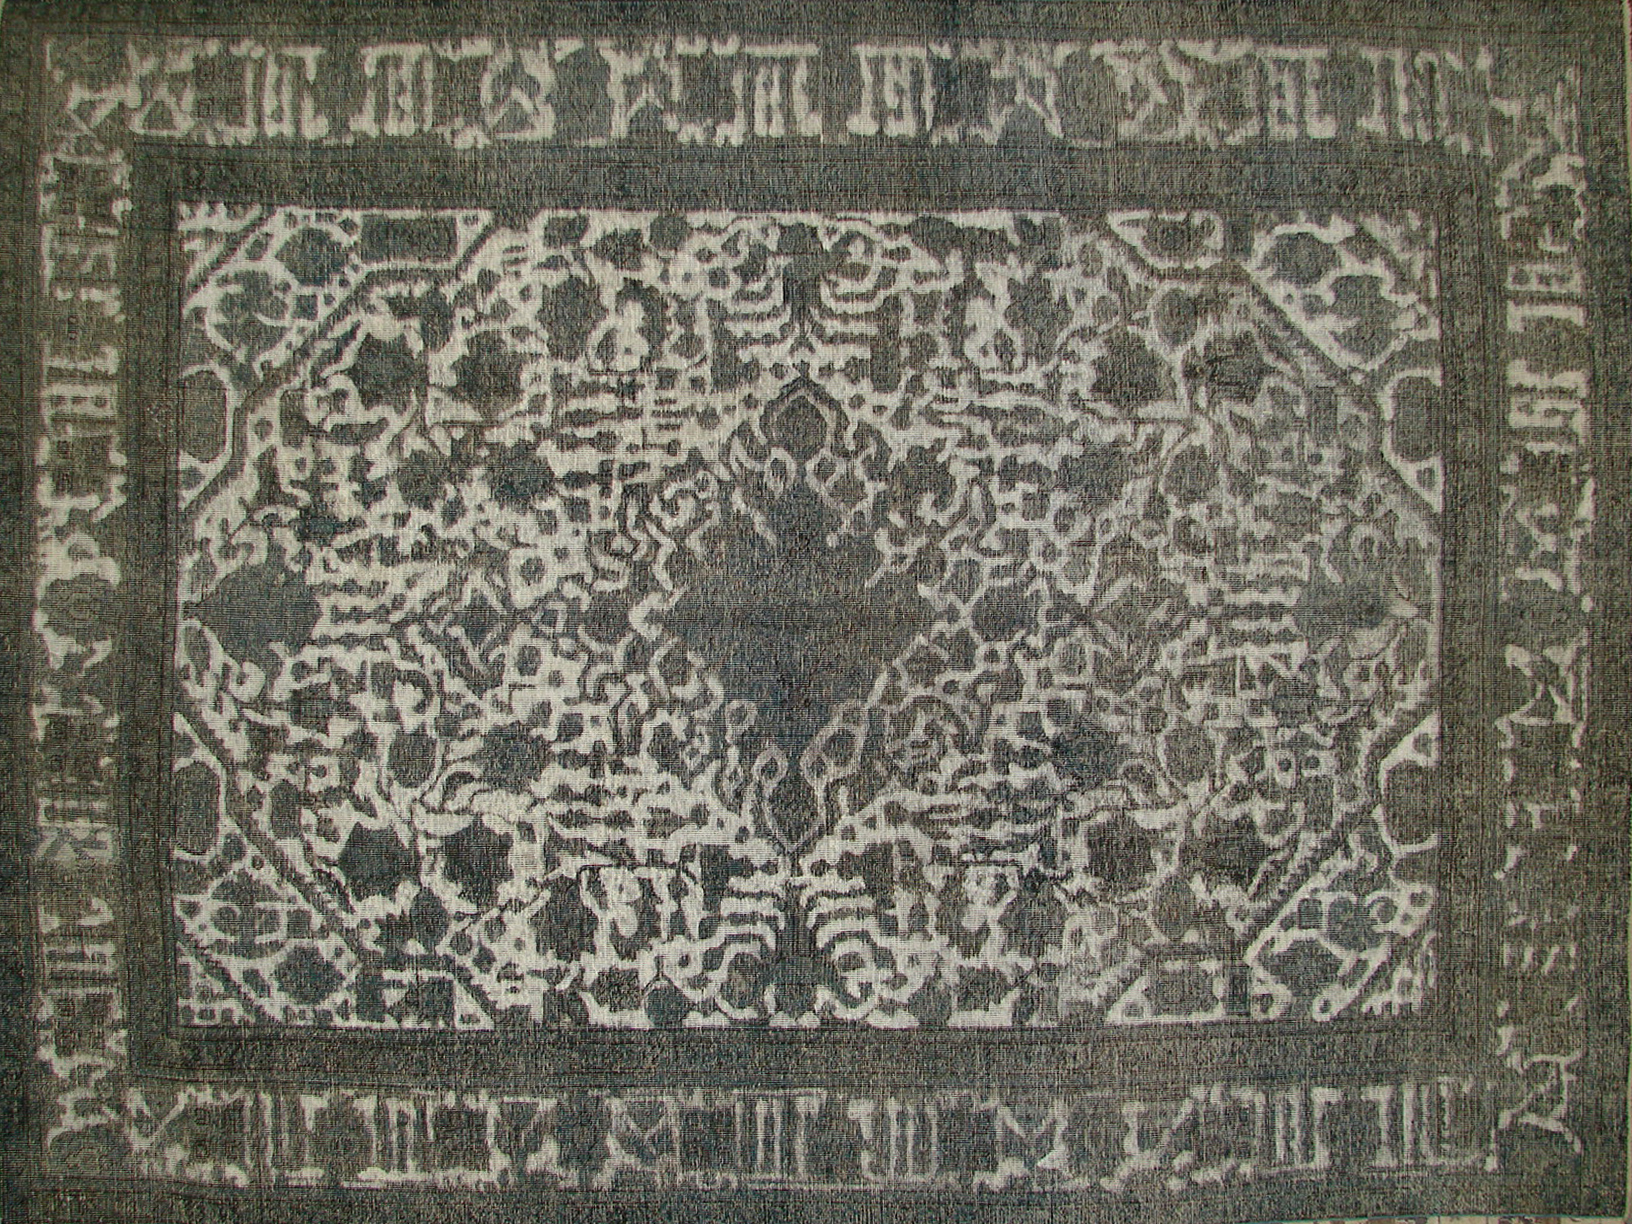 8x10 Vintage Hand Knotted Wool Area Rug - MR19267